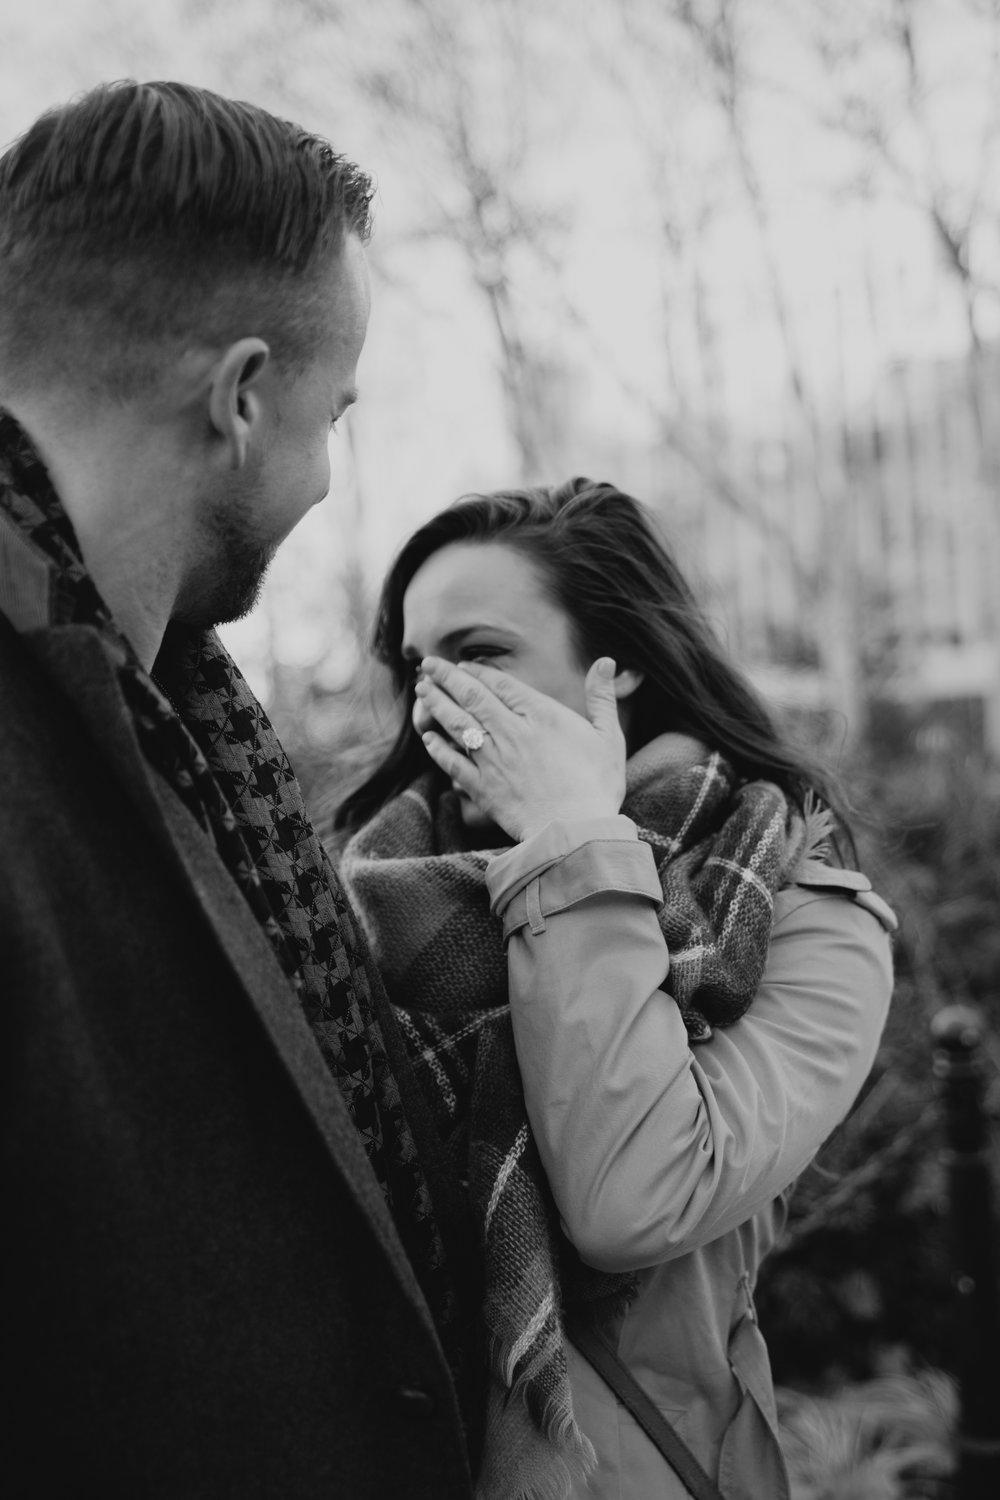 brooke+jason_engagement-046.jpg